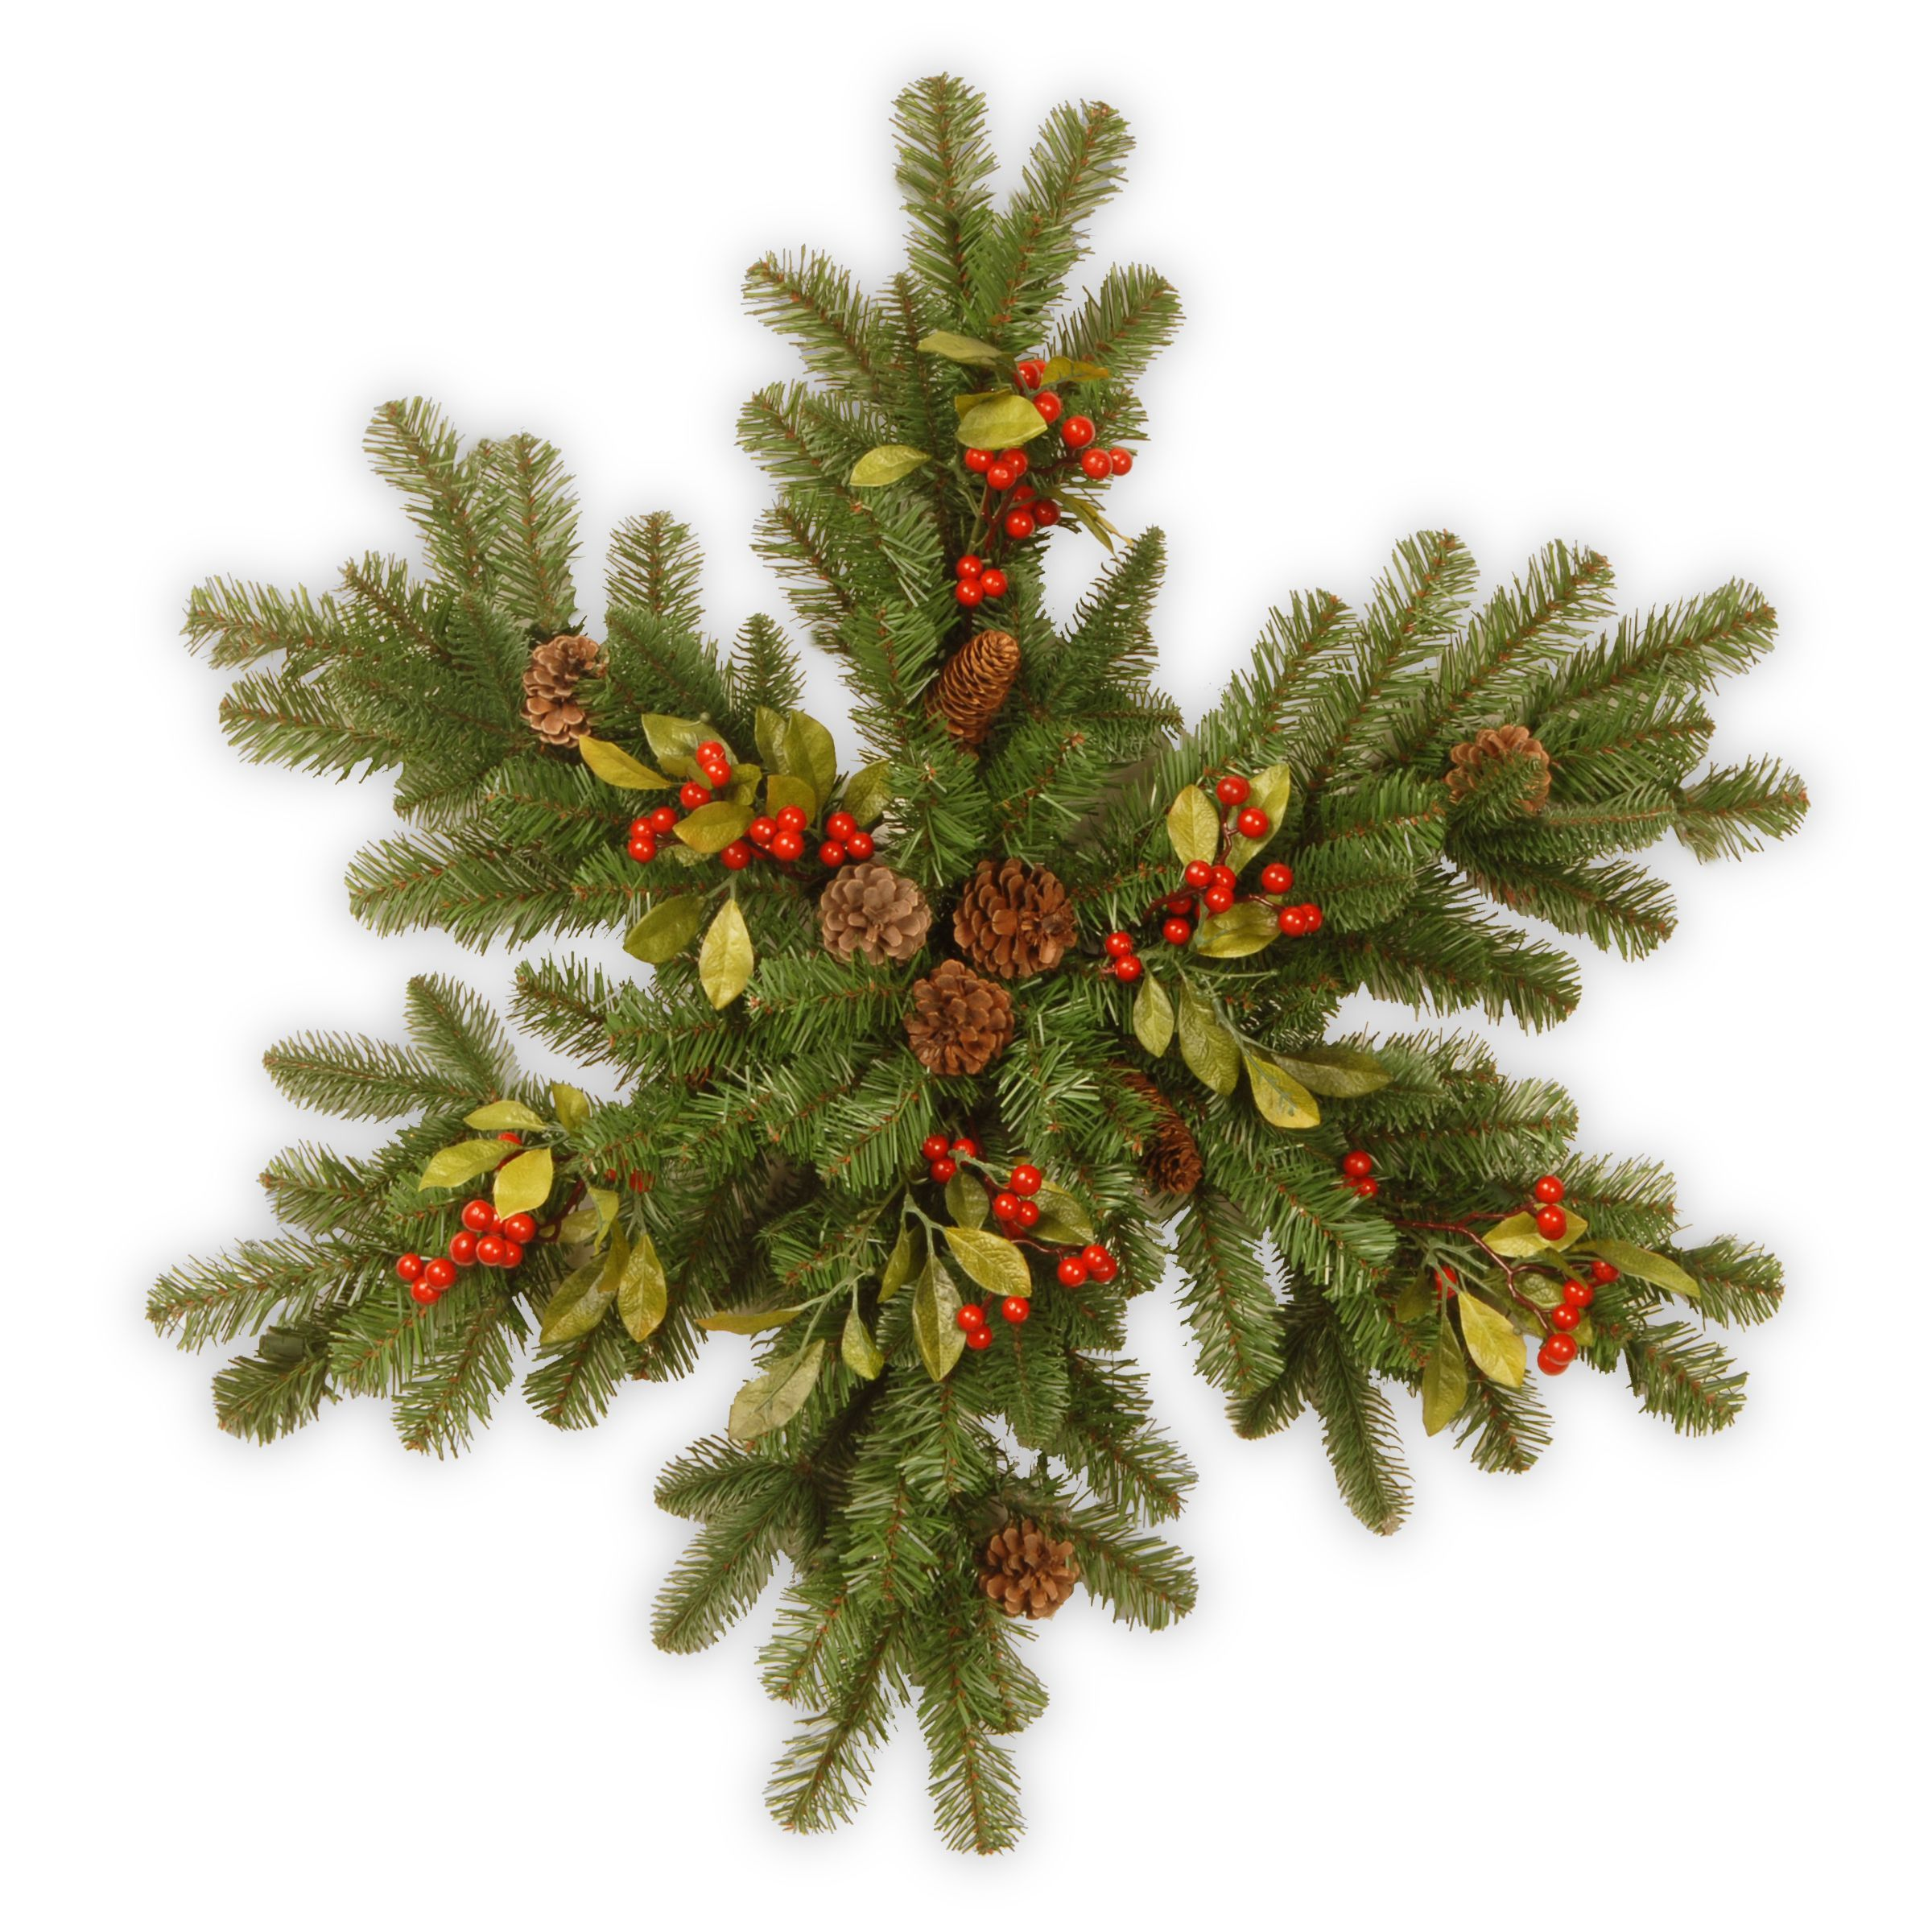 Overstock Com Online Shopping Bedding Furniture Electronics Jewelry Clothing More Christmas Wreaths Holiday Wreaths Outdoor Christmas